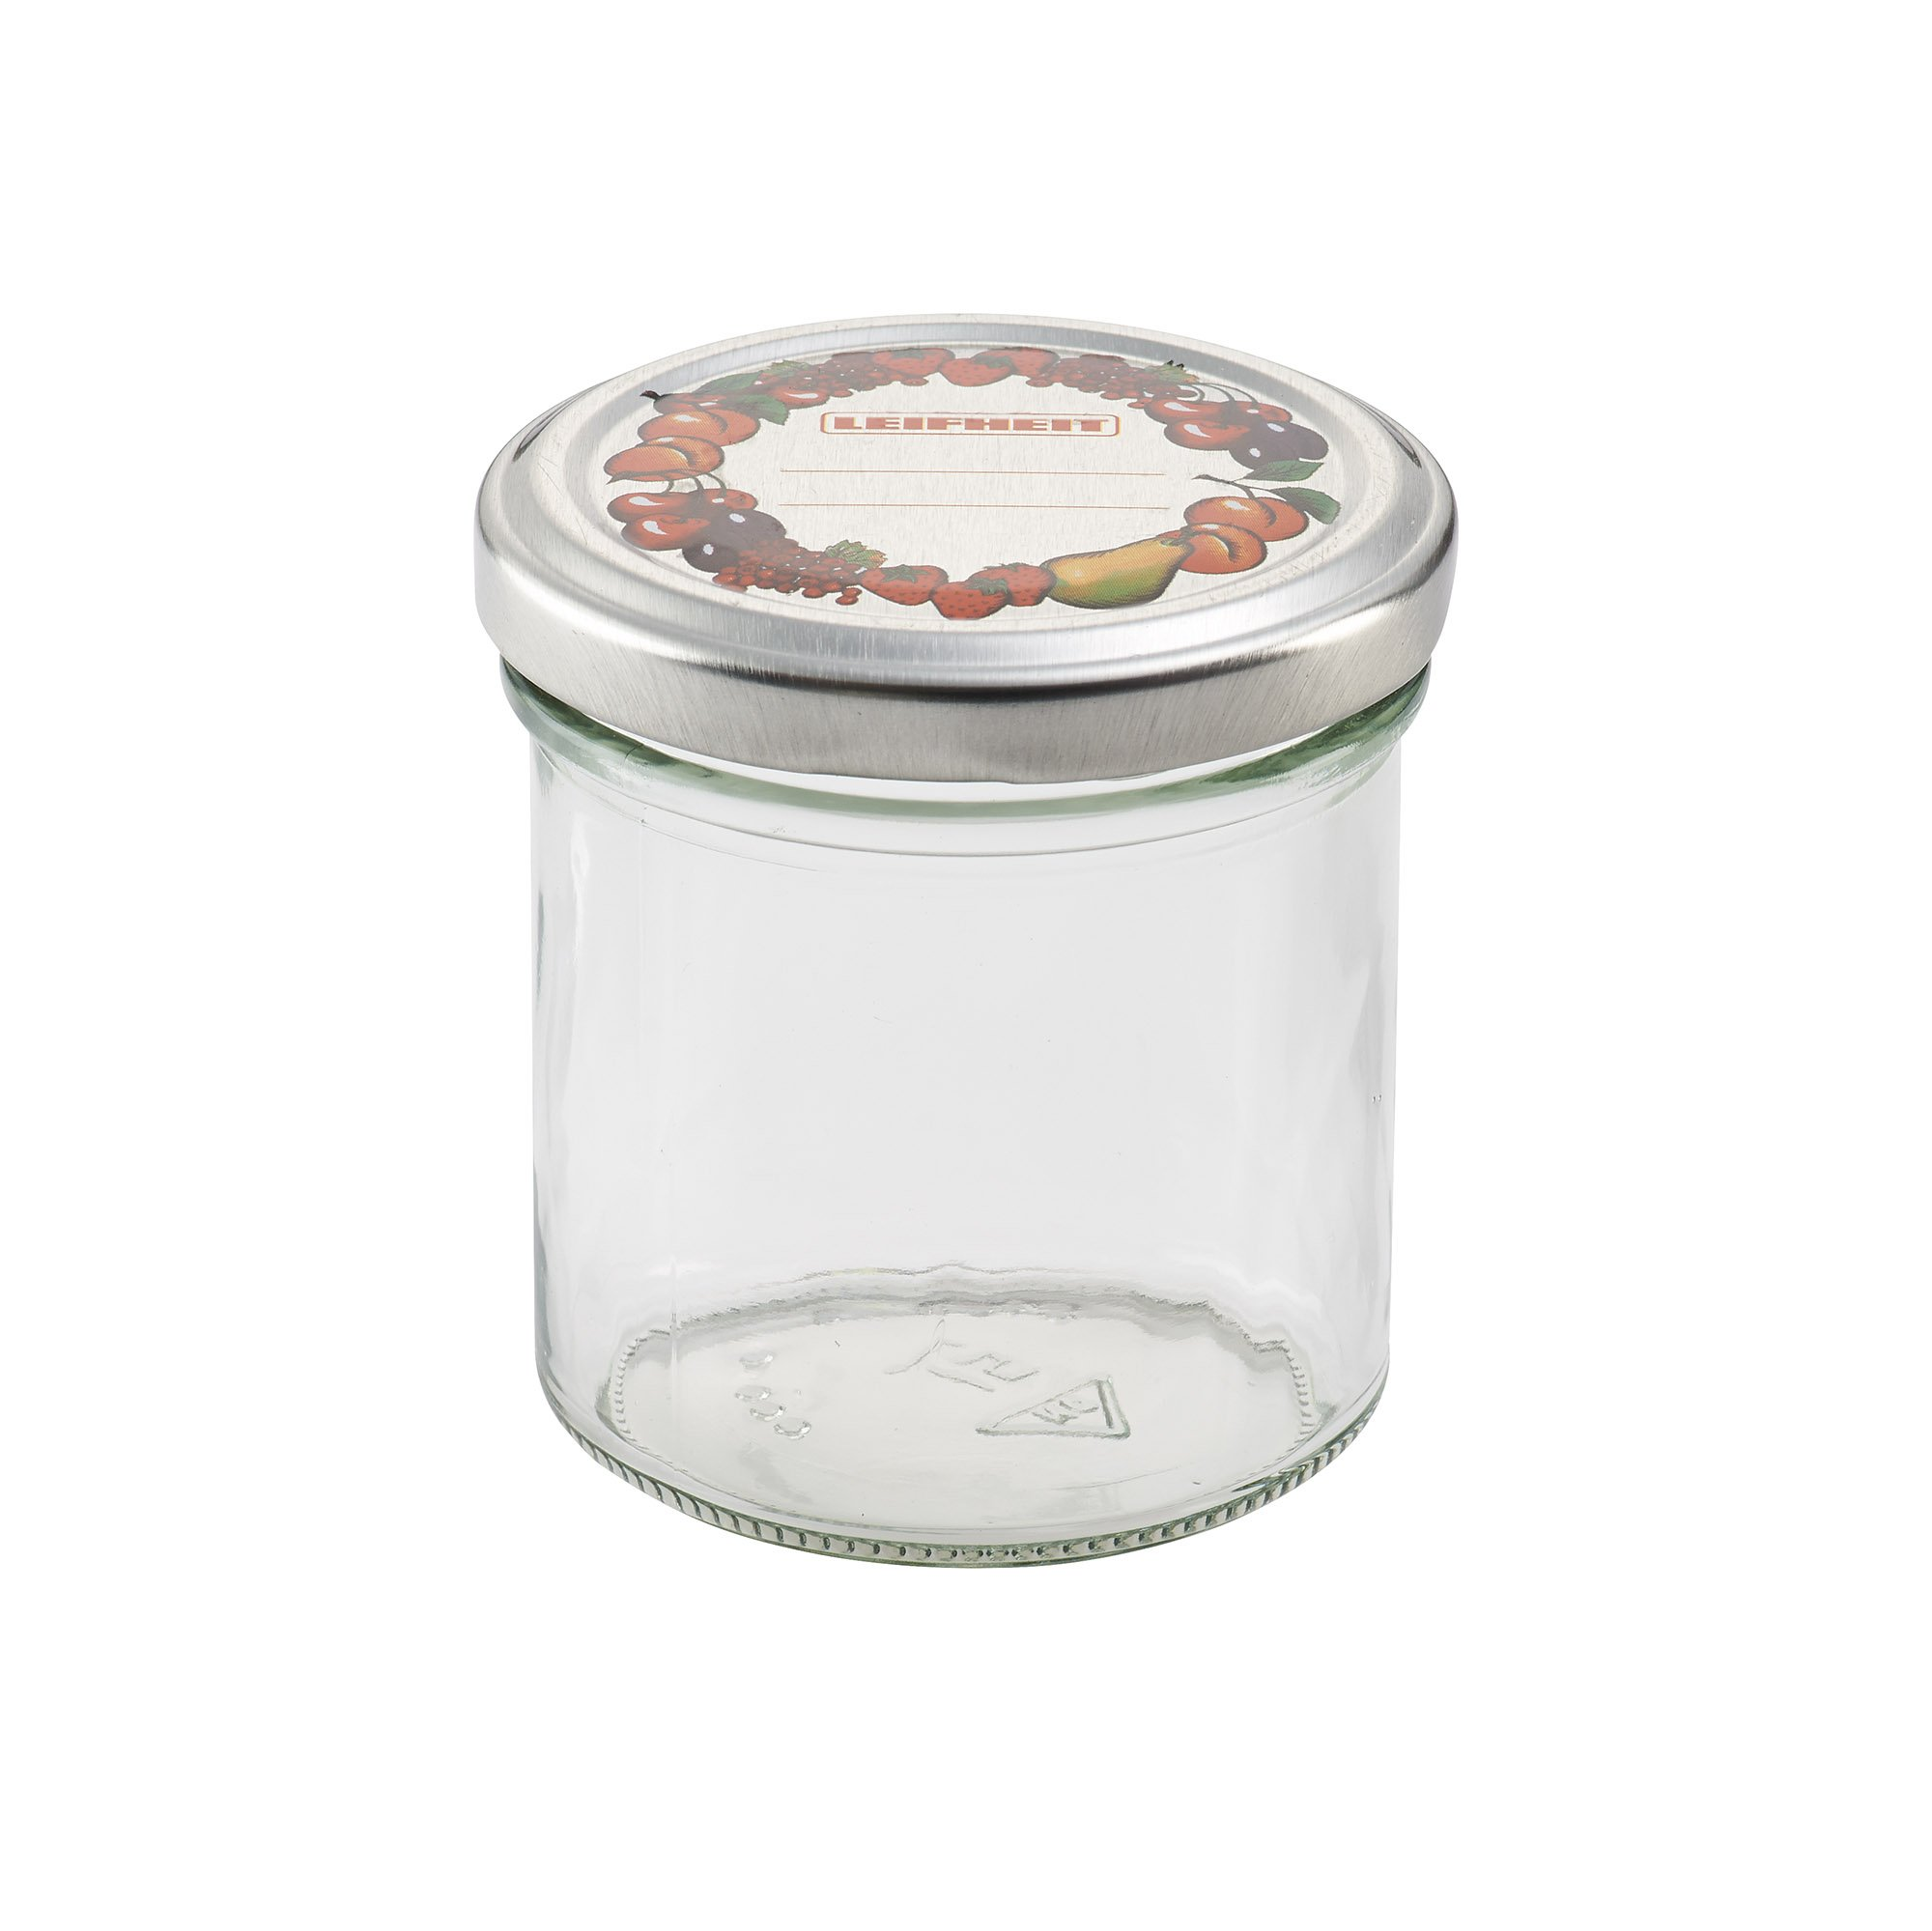 1//2 Pint Clear Anchor Hocking Home Canning Jars with Metal Lids /& Rings